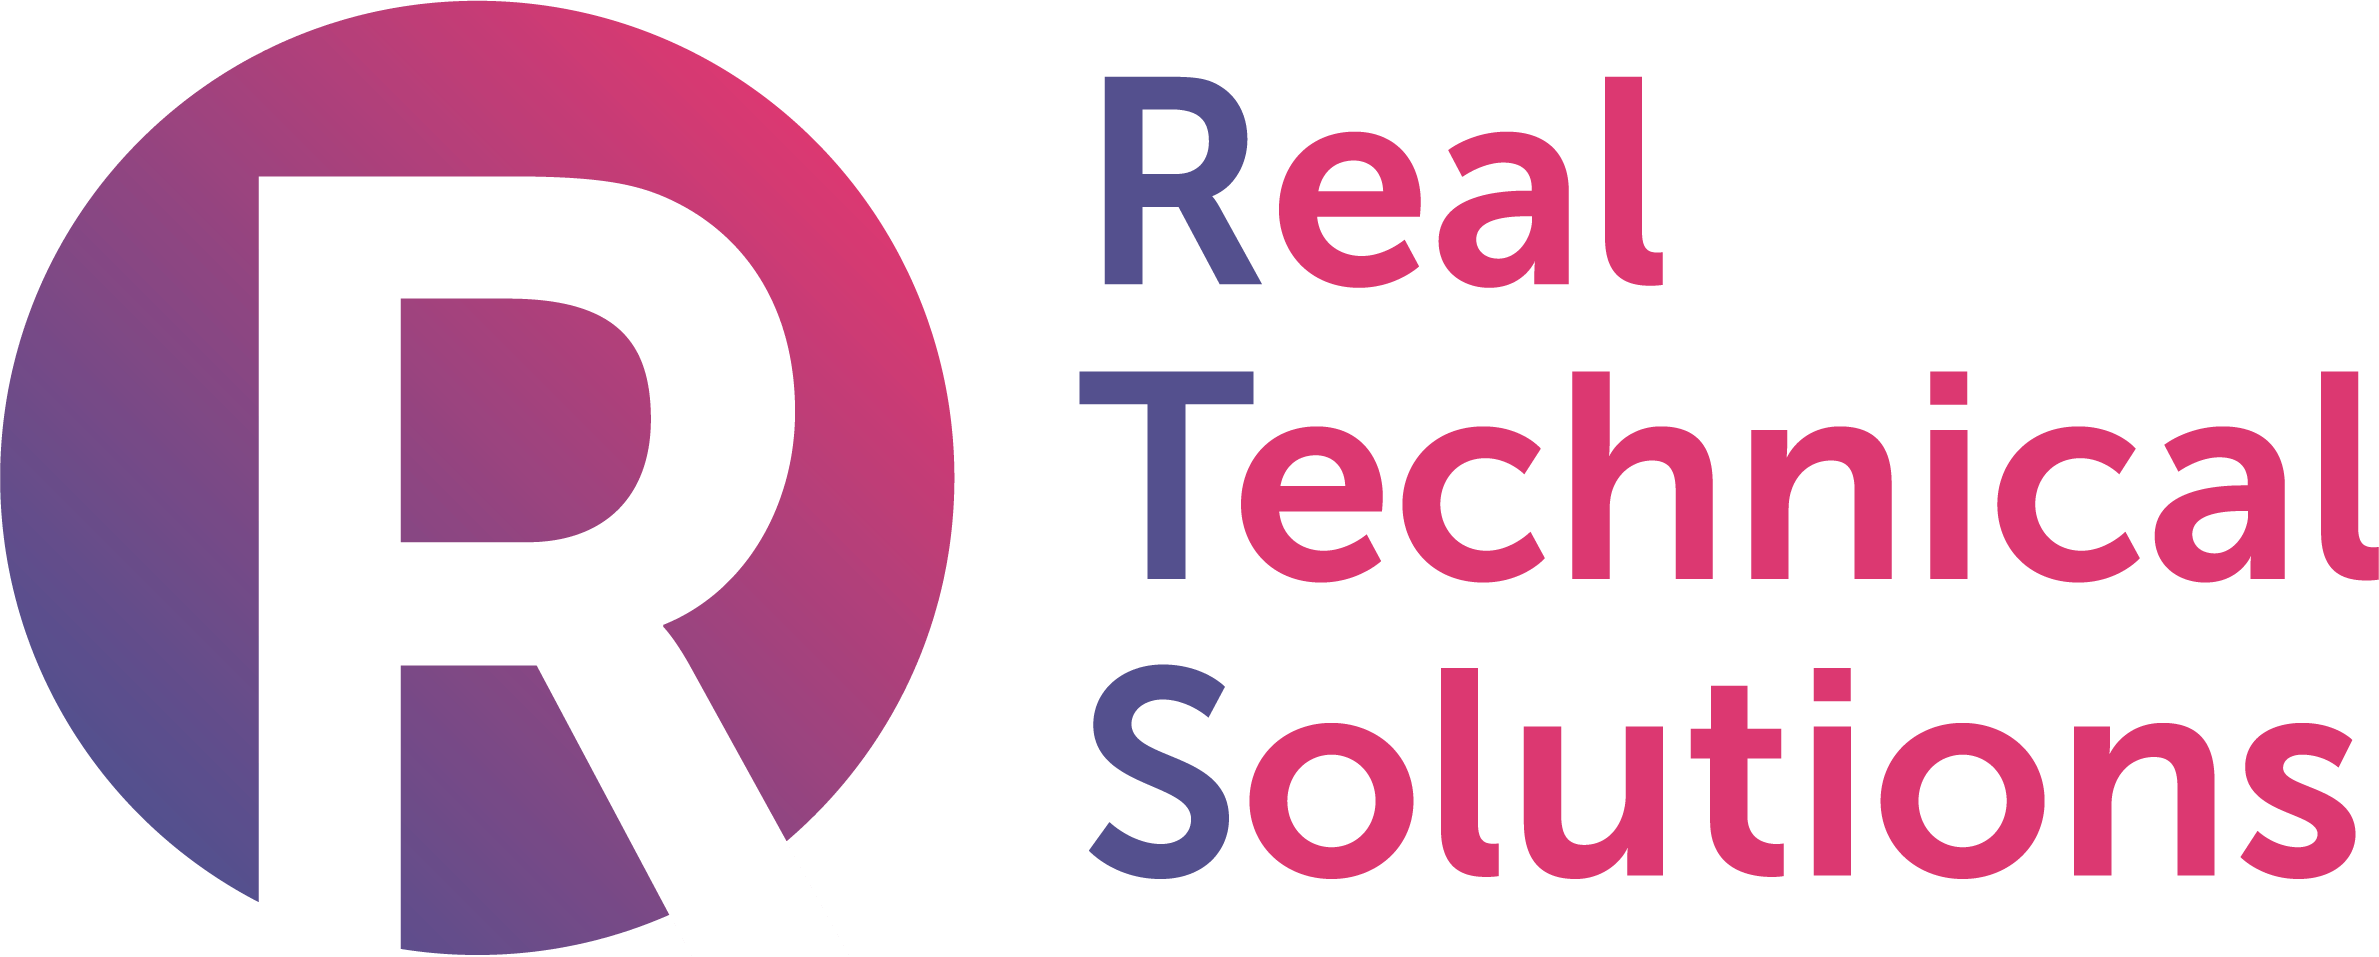 Real Technical Solutions